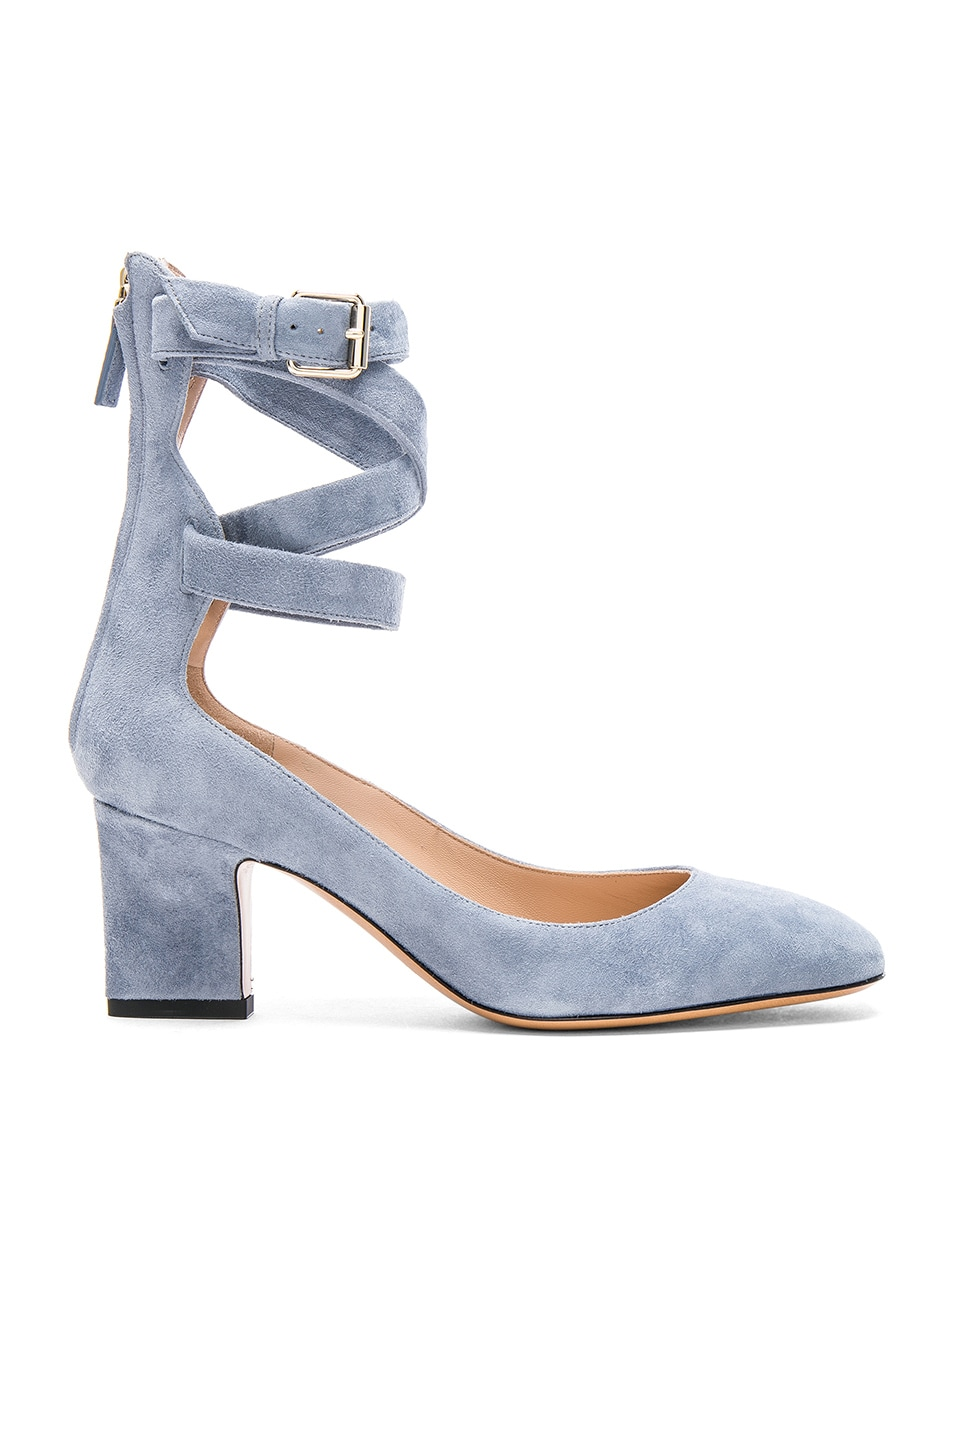 Image 1 of Valentino Suede Ankle Strap Heels in London Sky